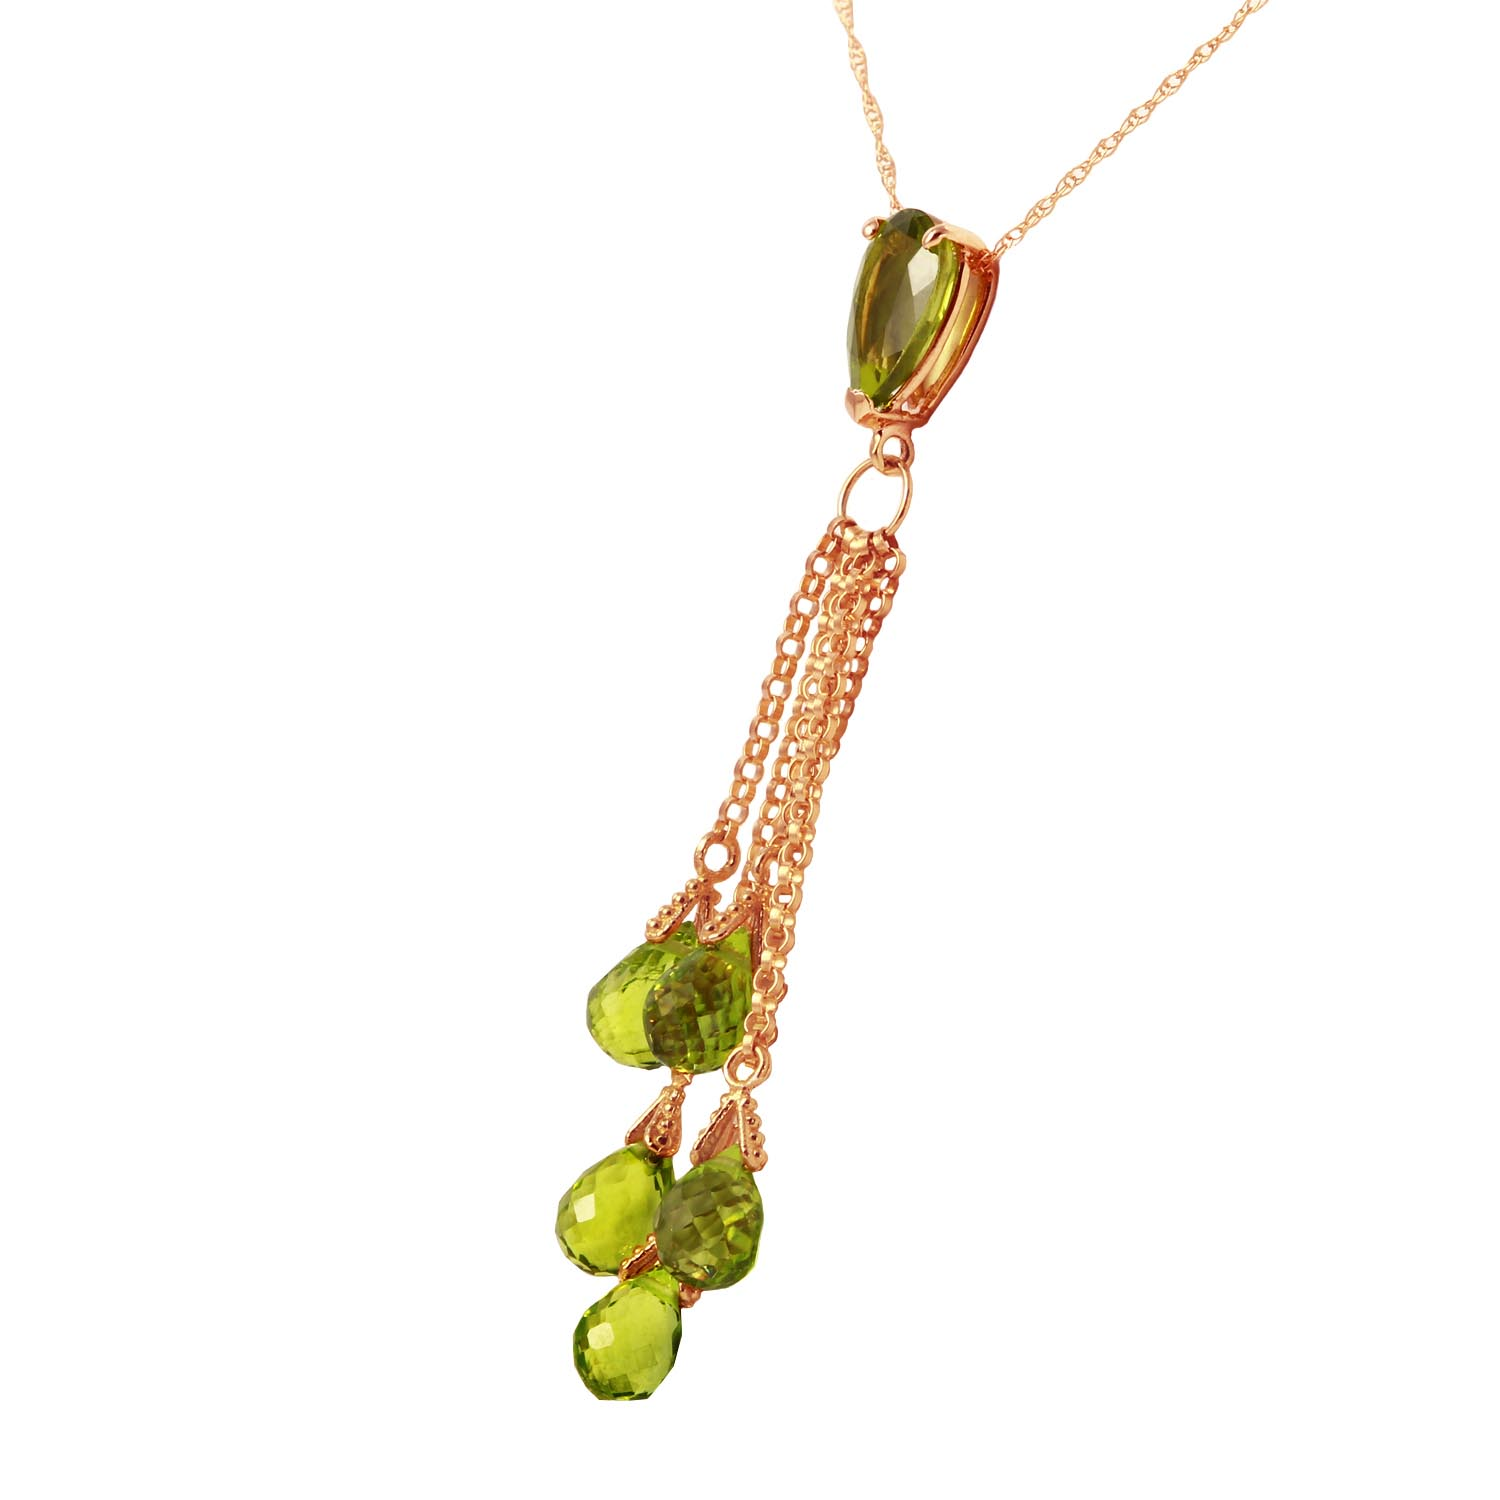 Peridot Comet Tail Pendant Necklace 7.5ctw in 9ct Rose Gold